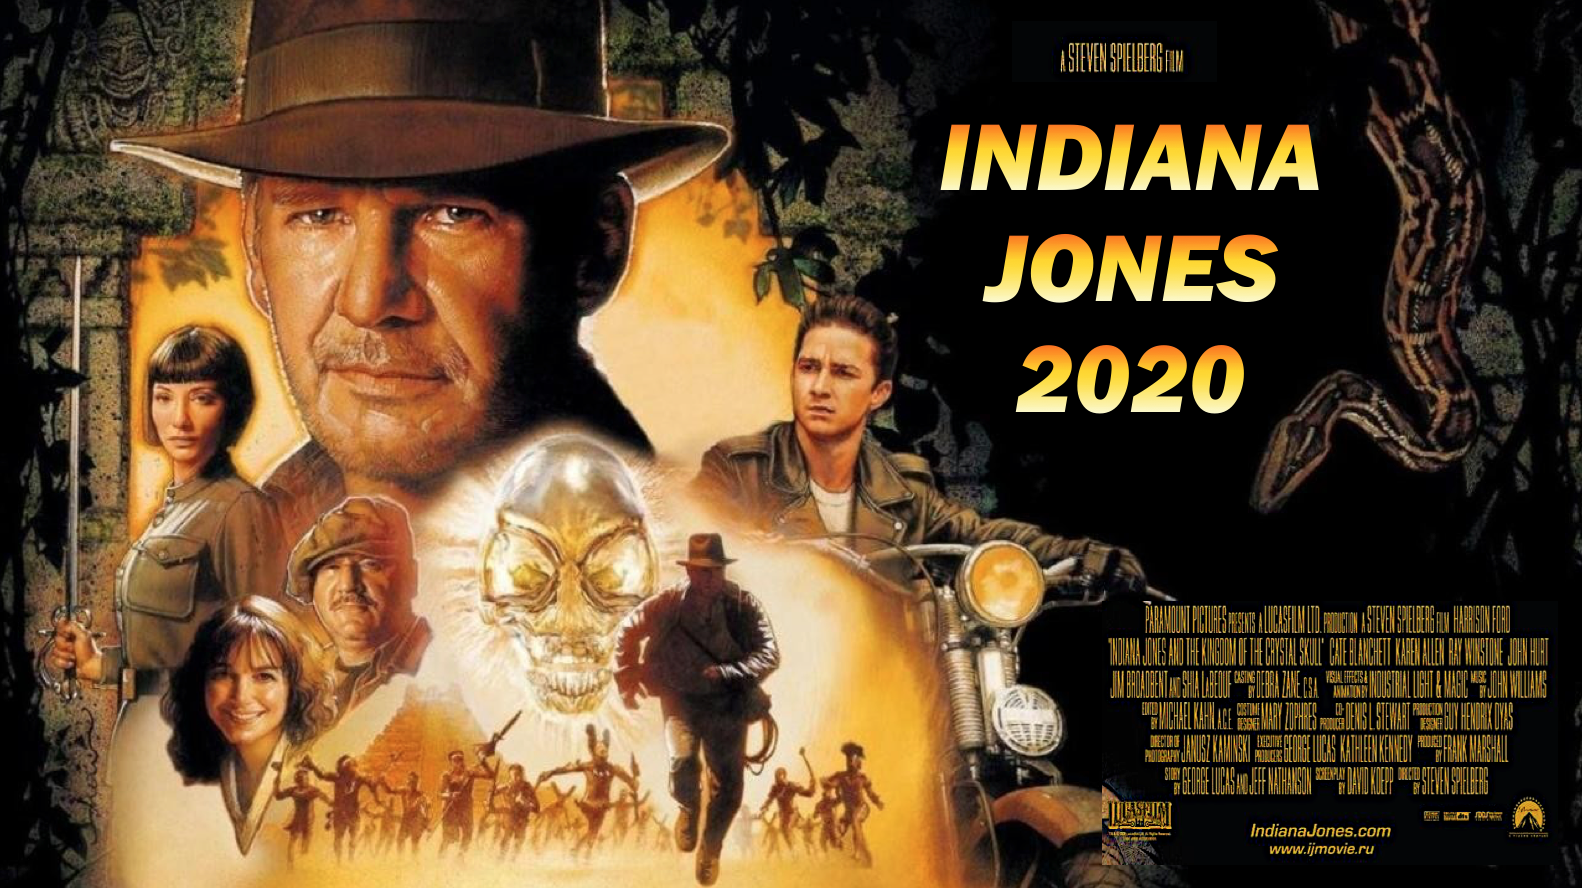 Why did it take almost 20 years for the fourth Indiana Jones